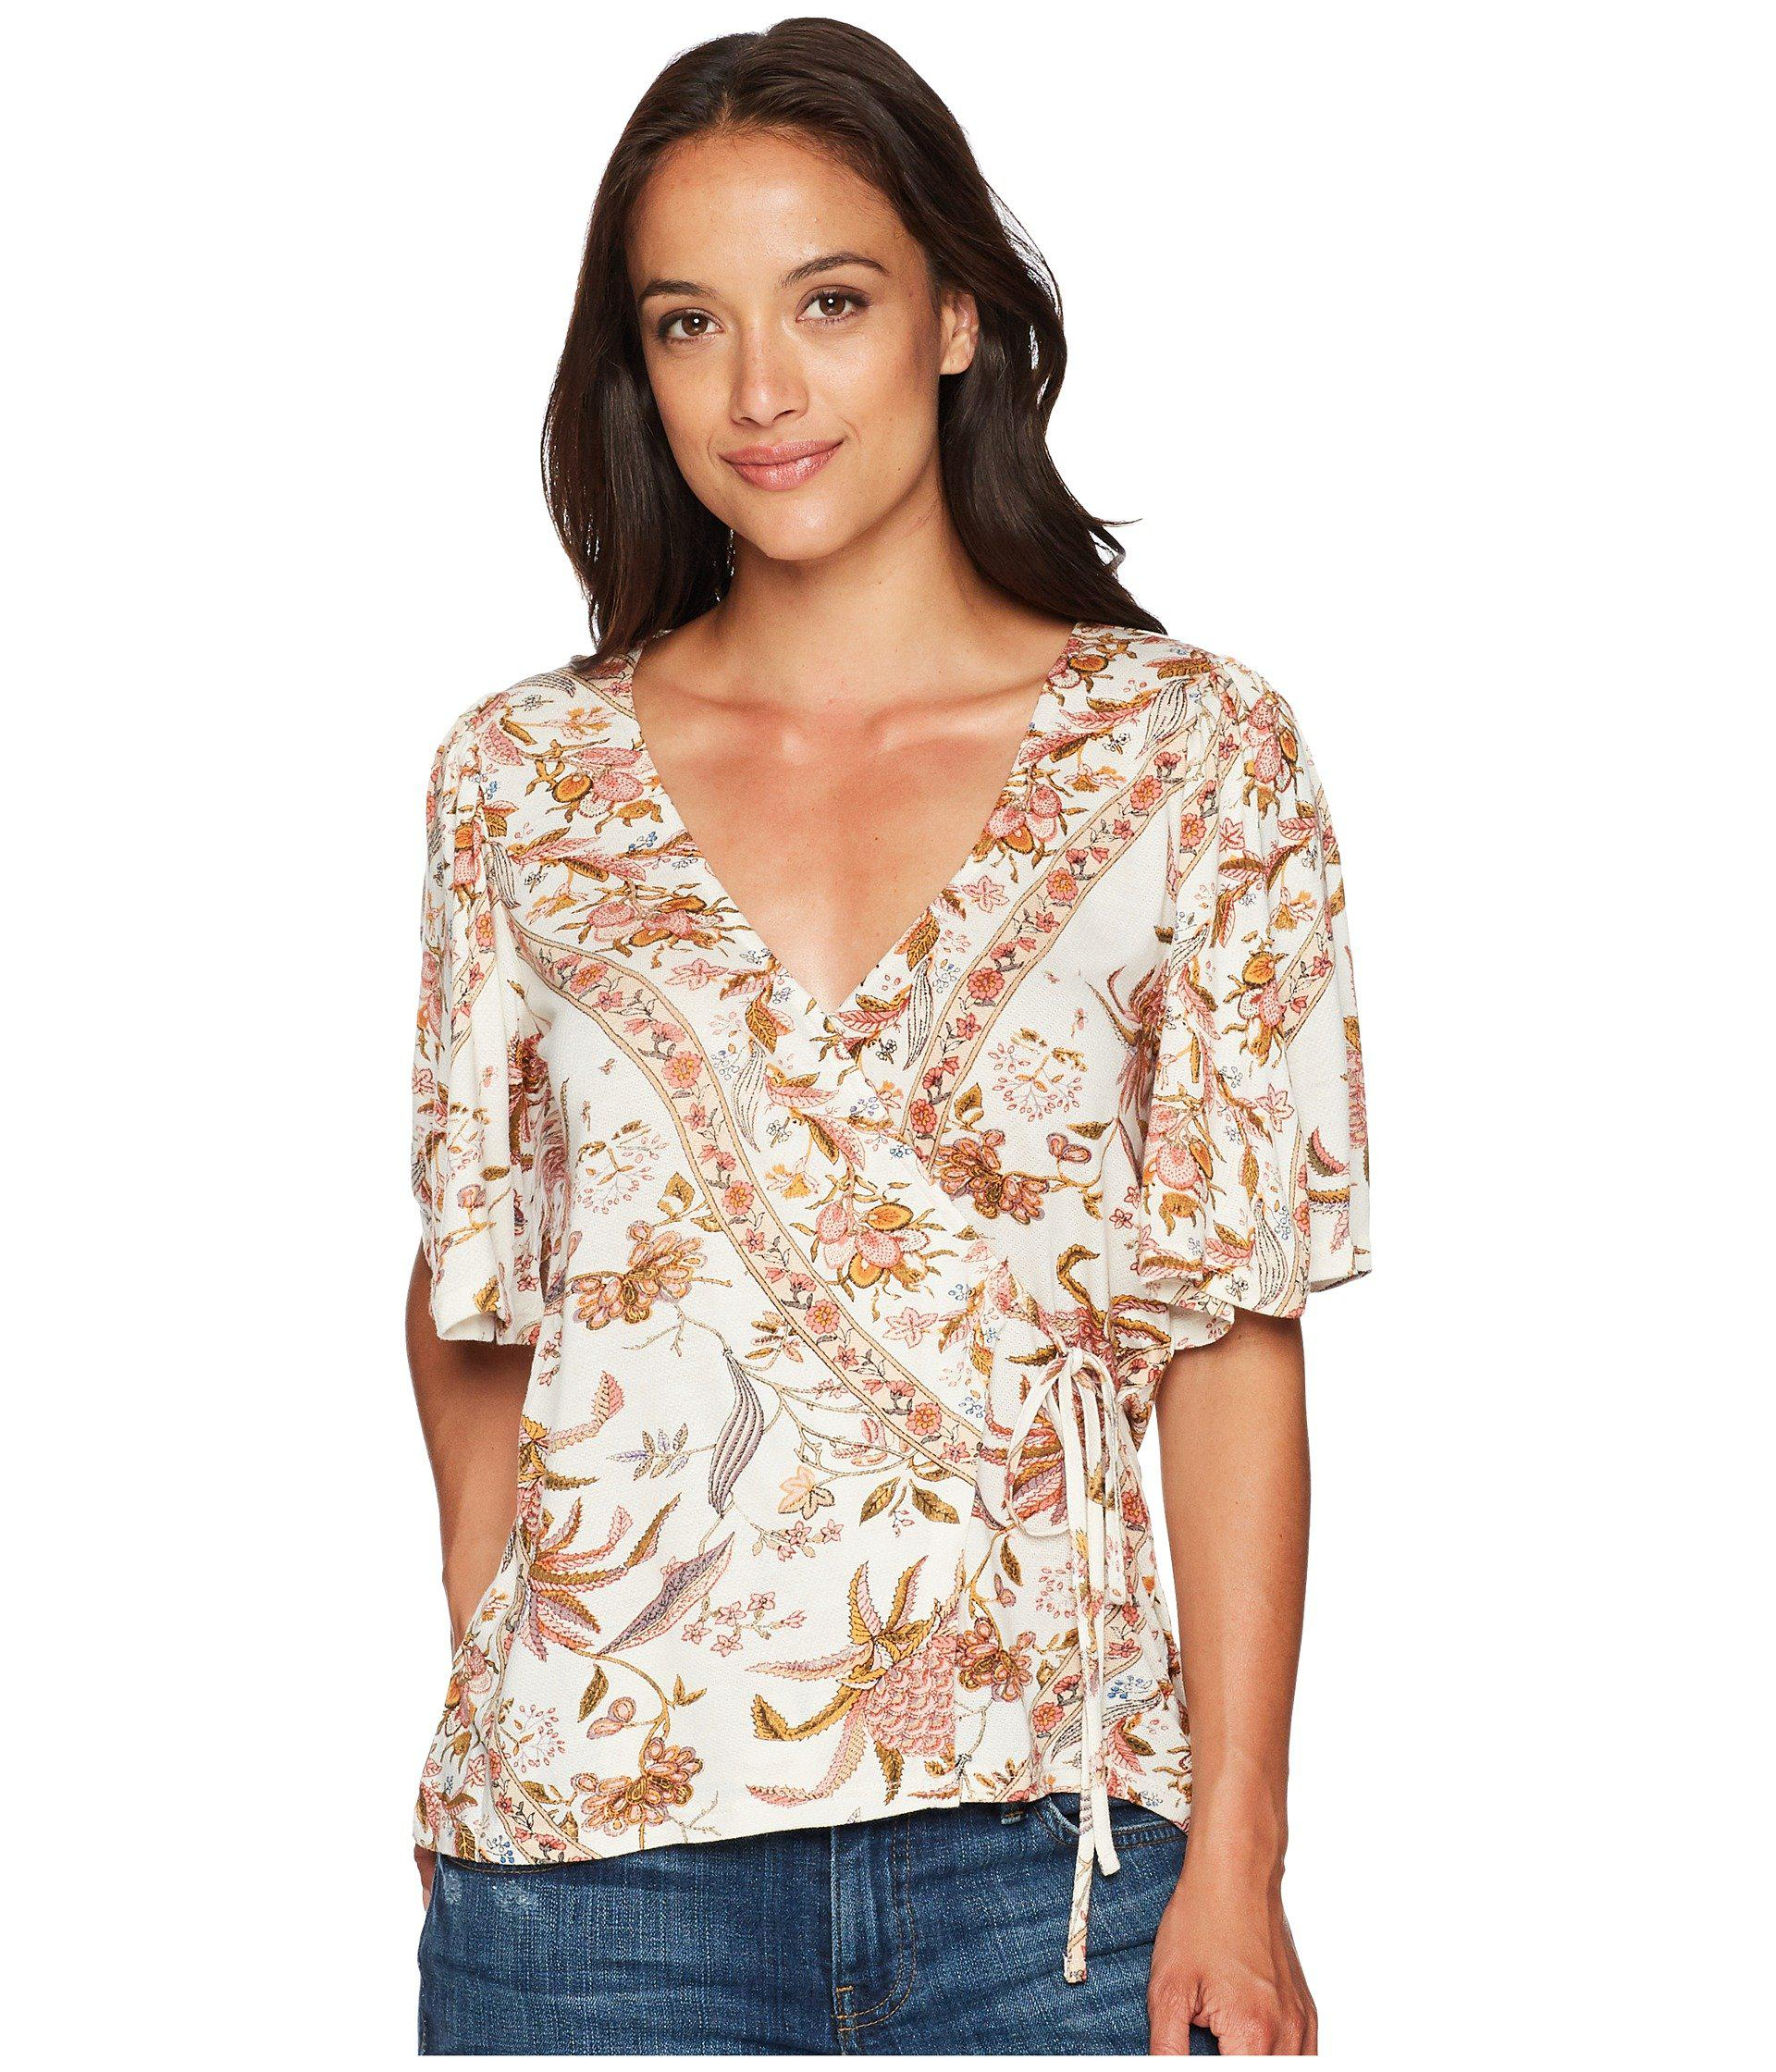 01ee79205df947 Lyst - Lucky Brand Floral Print Wrap Top in Brown - Save 19%